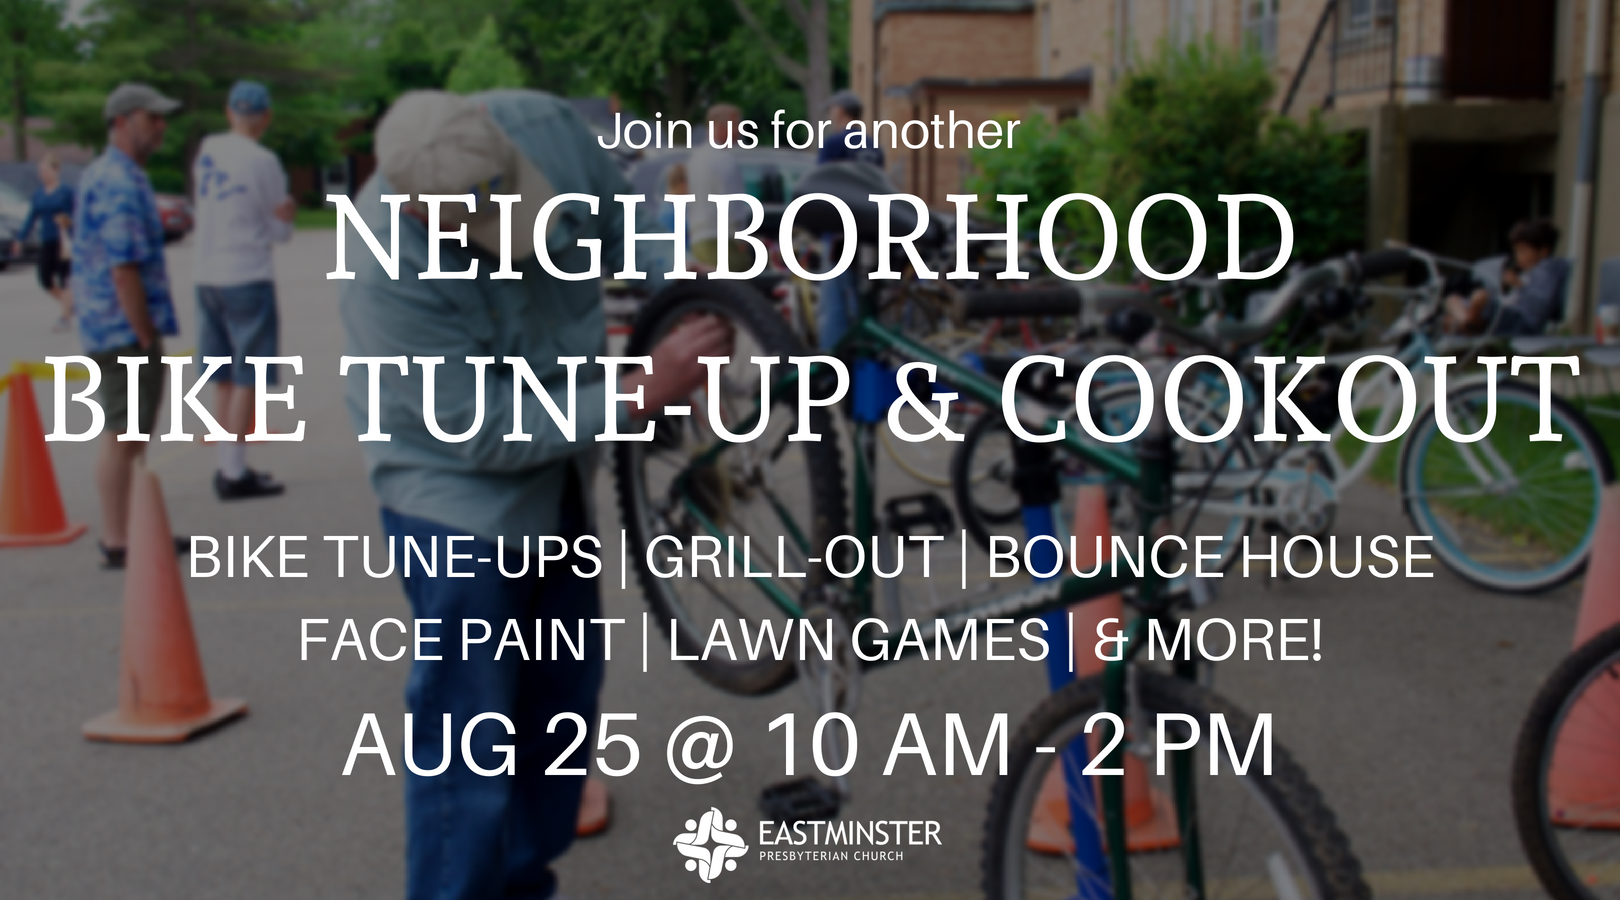 Neighborhood Bike Tune-Up and Cookout on August 25 from 10 am to 2 pm at Eastminster Presbyterian Church. We'll have bike tune-ups, grilled hot dogs, a bounce house, face painting, lawn games, and more.